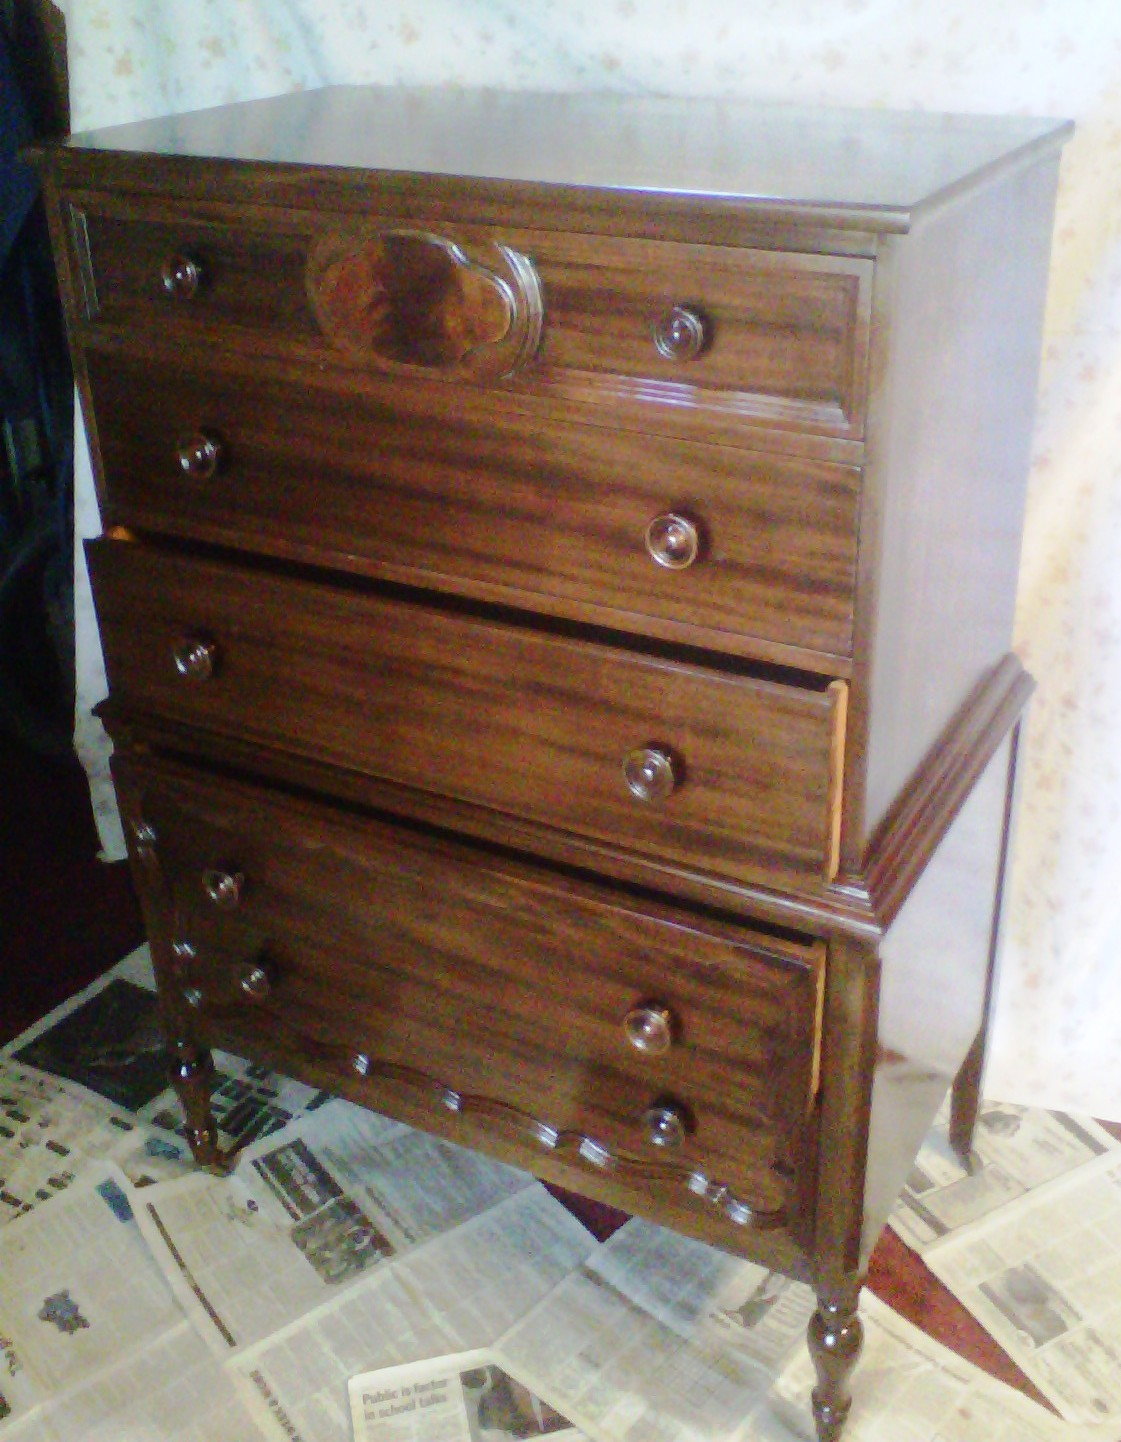 Sligh Furniture Antique Dresser - Sligh Furniture Antique Dresser Antique Furniture